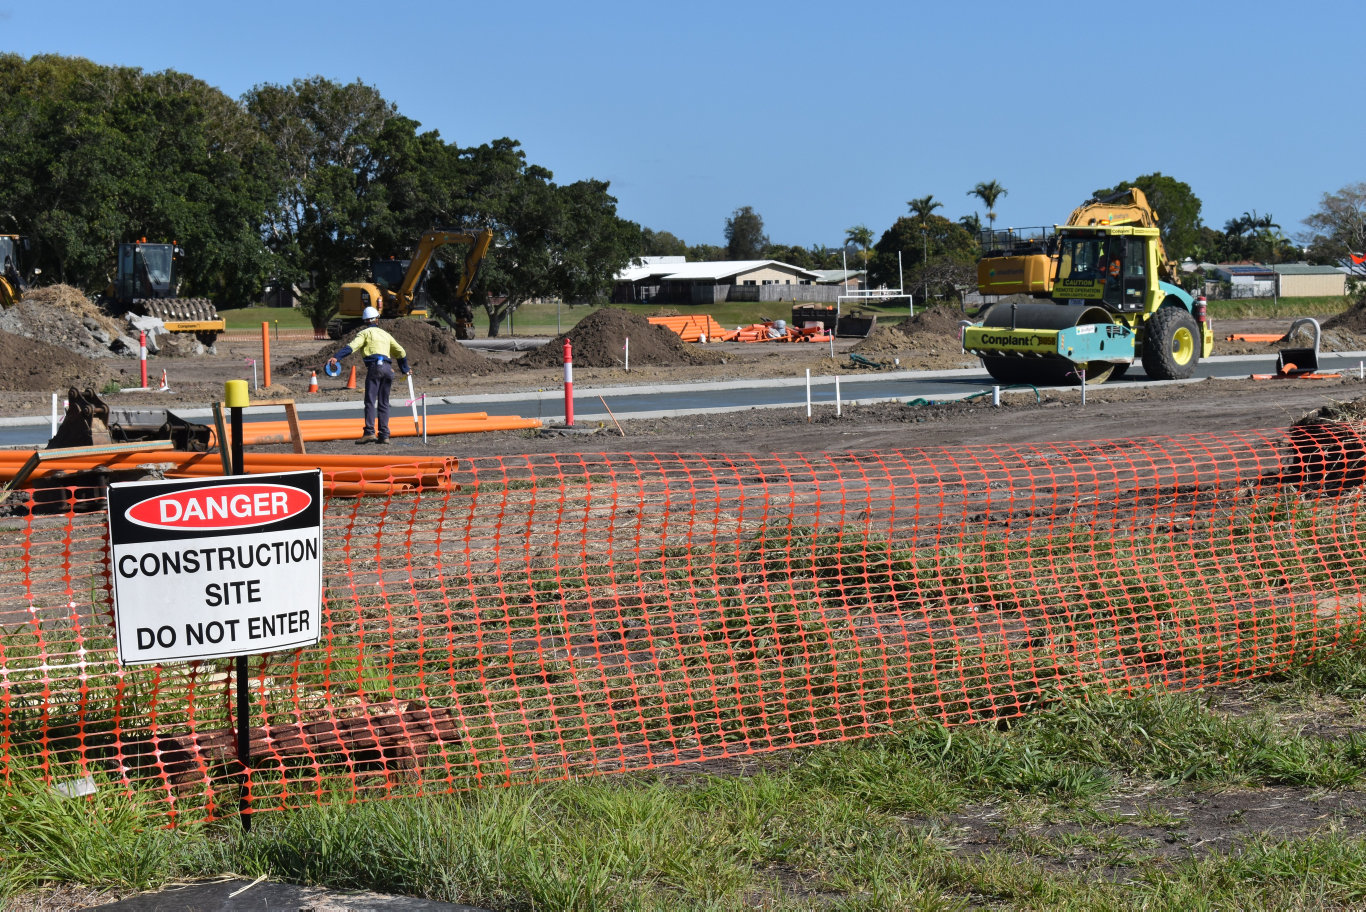 Andergrove Lakes has held a development approval for a 520-unit lakeside development in Mackay since 2012. Works have begun on the latest expansion of the massive development, with crews on site on Wednesday September 30. Picture: Zizi Averill